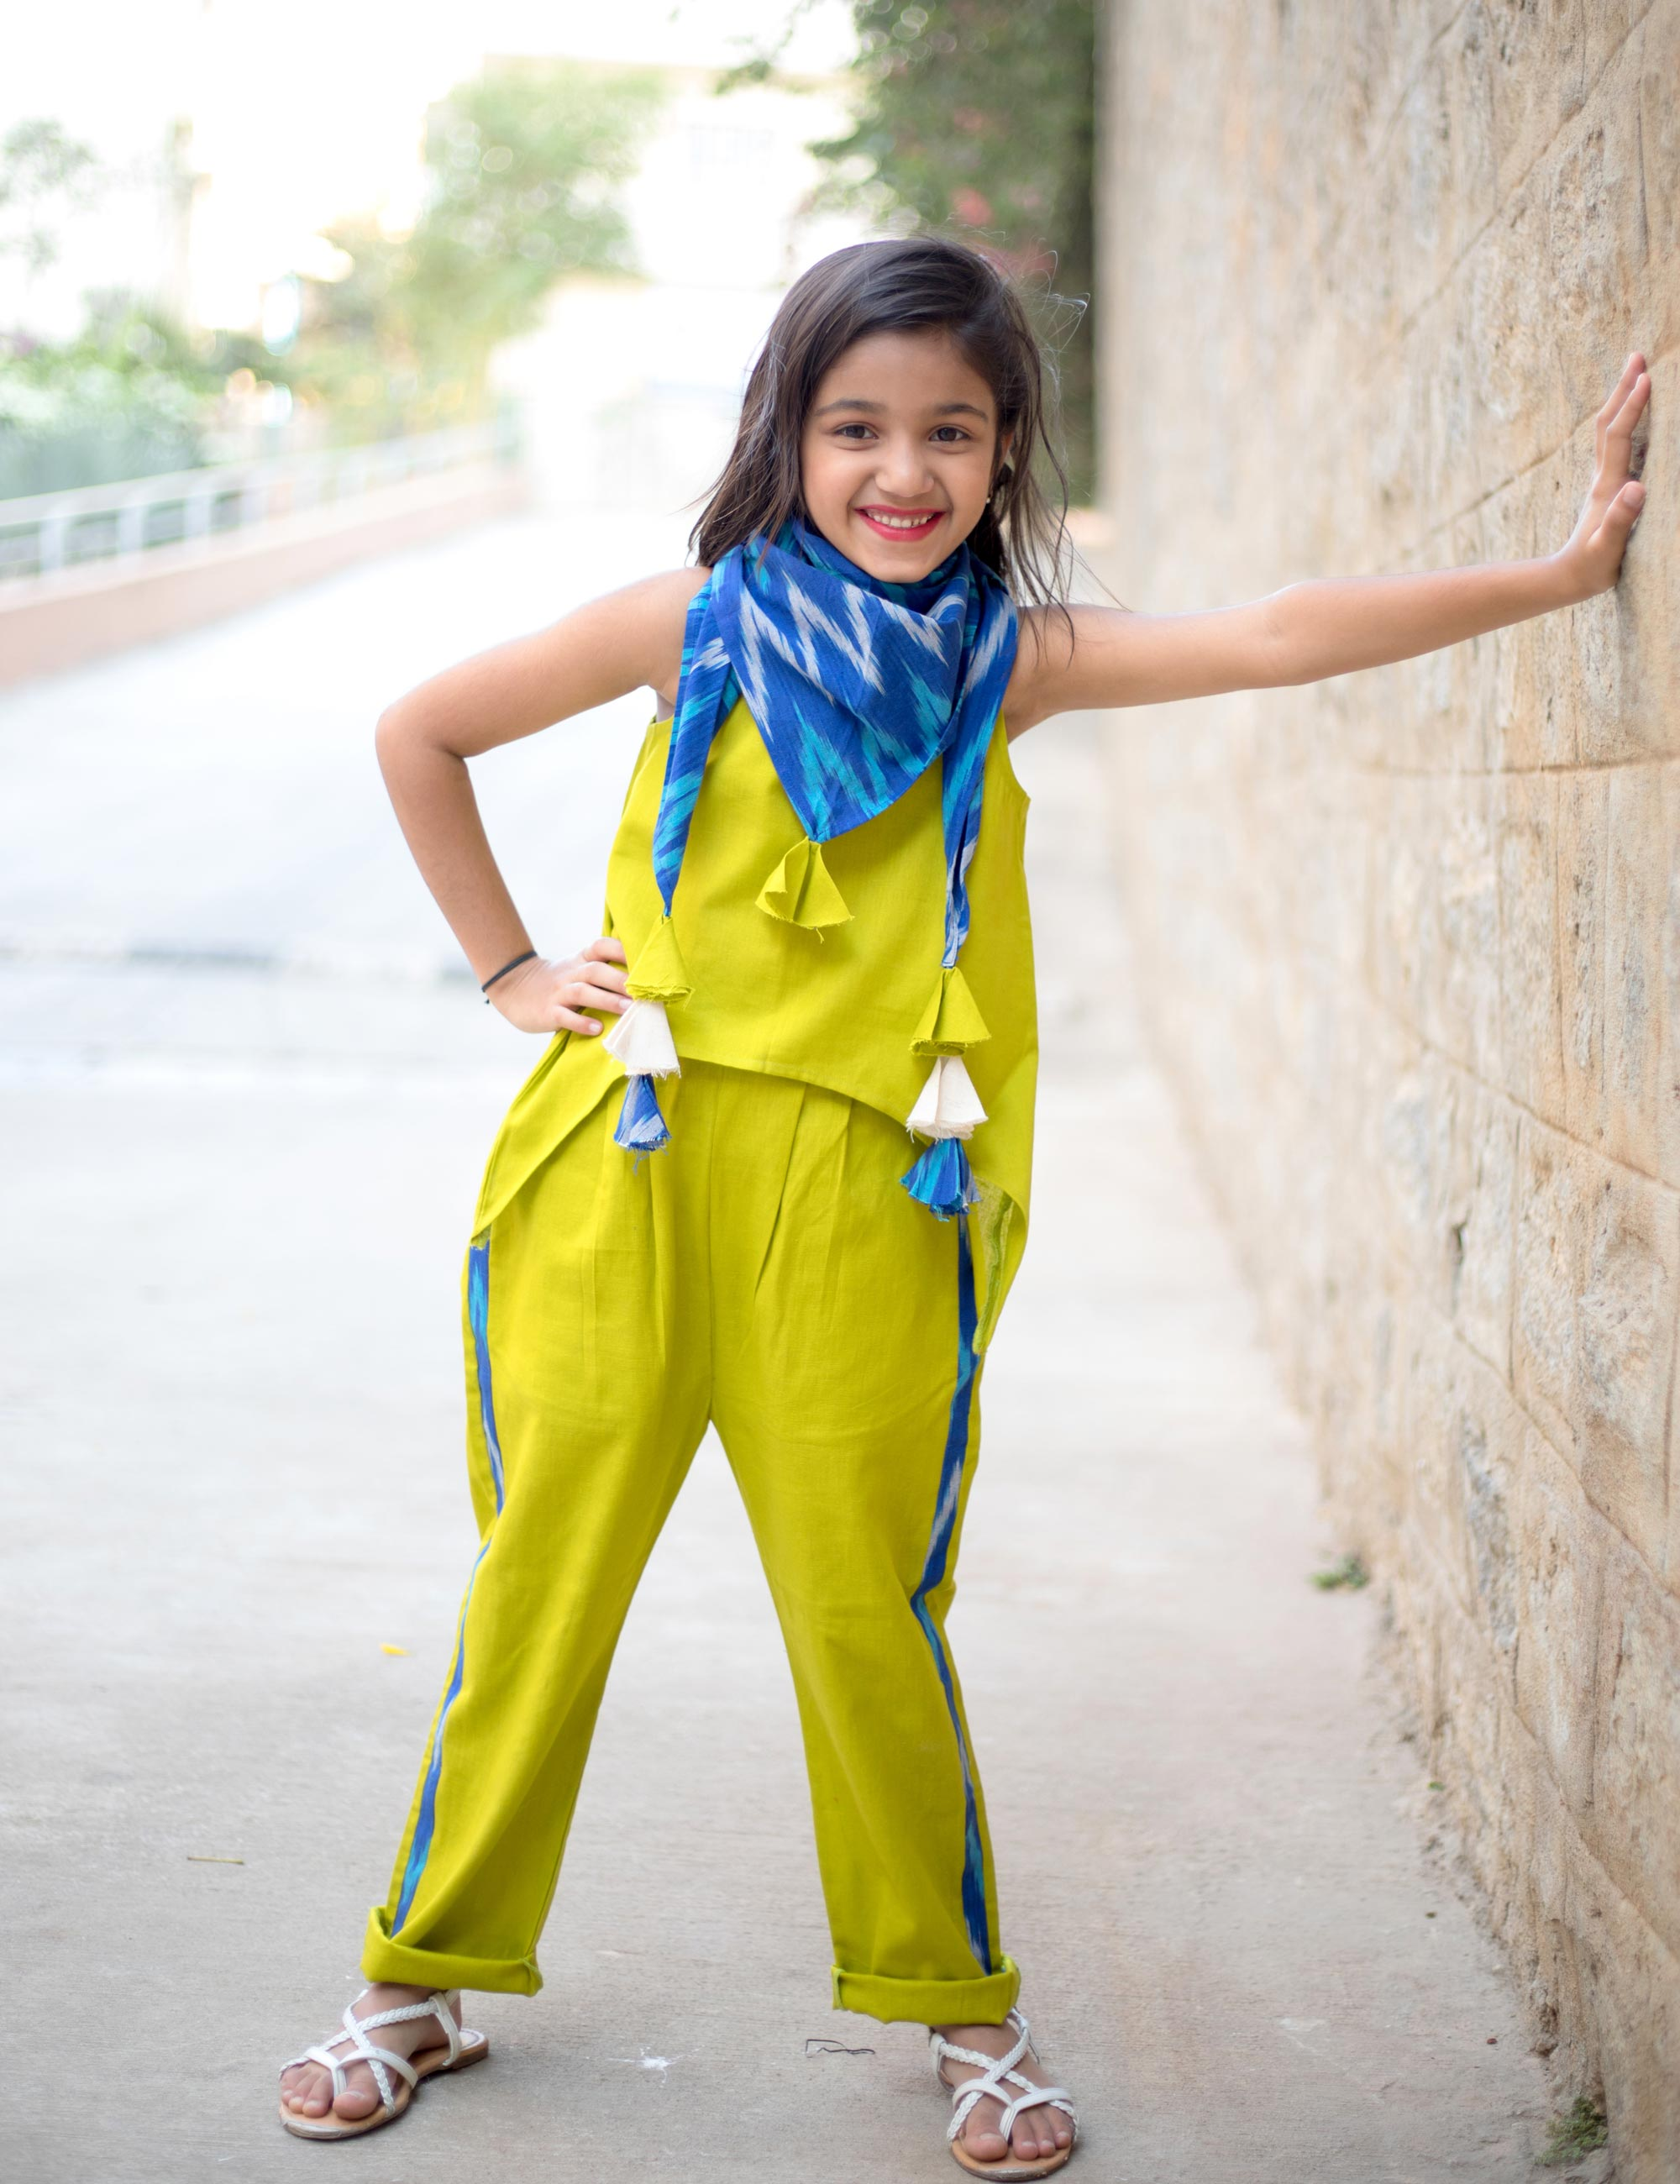 f8c4e0cc02 Girls Indian Wear - Buy Girls Ethnic Wear Online in India ...